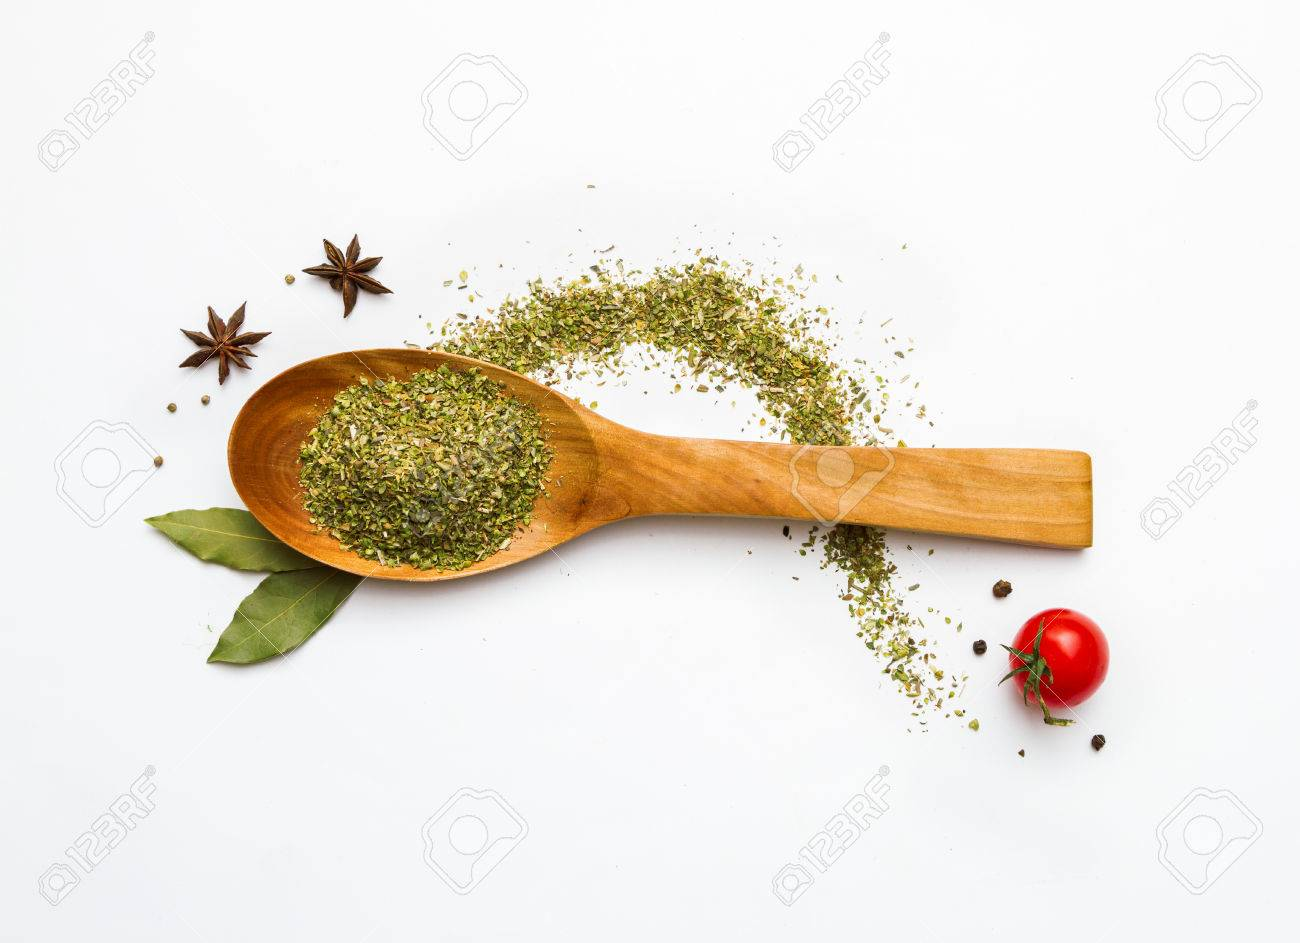 Food and spices herb for cooking background and design. Stock Photo - 42070577